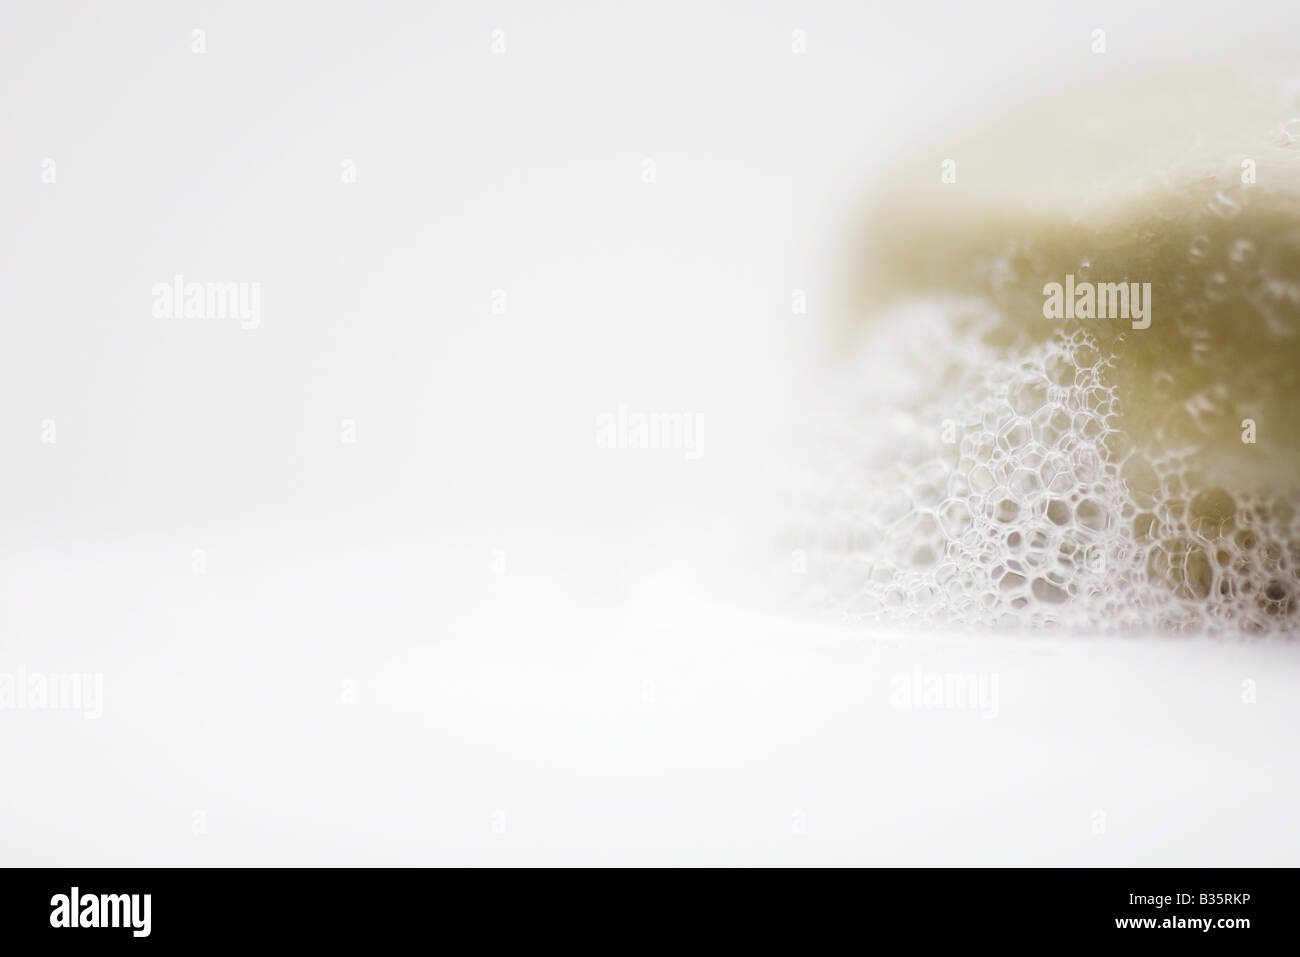 Bar of soap and suds, close-up - Stock Image